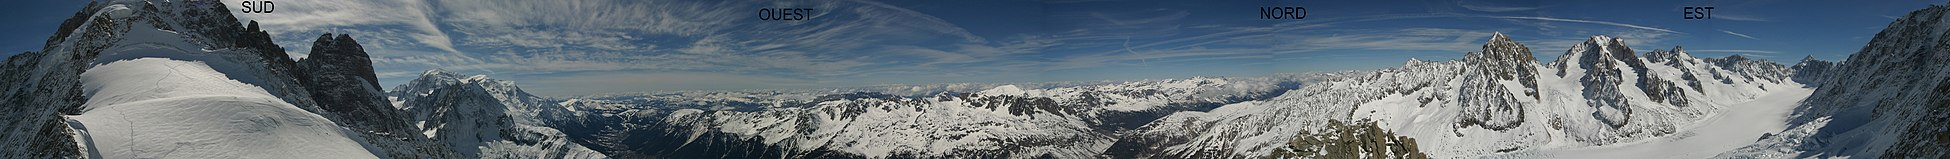 mountains of the Mont Blanc massif seen from the northeast